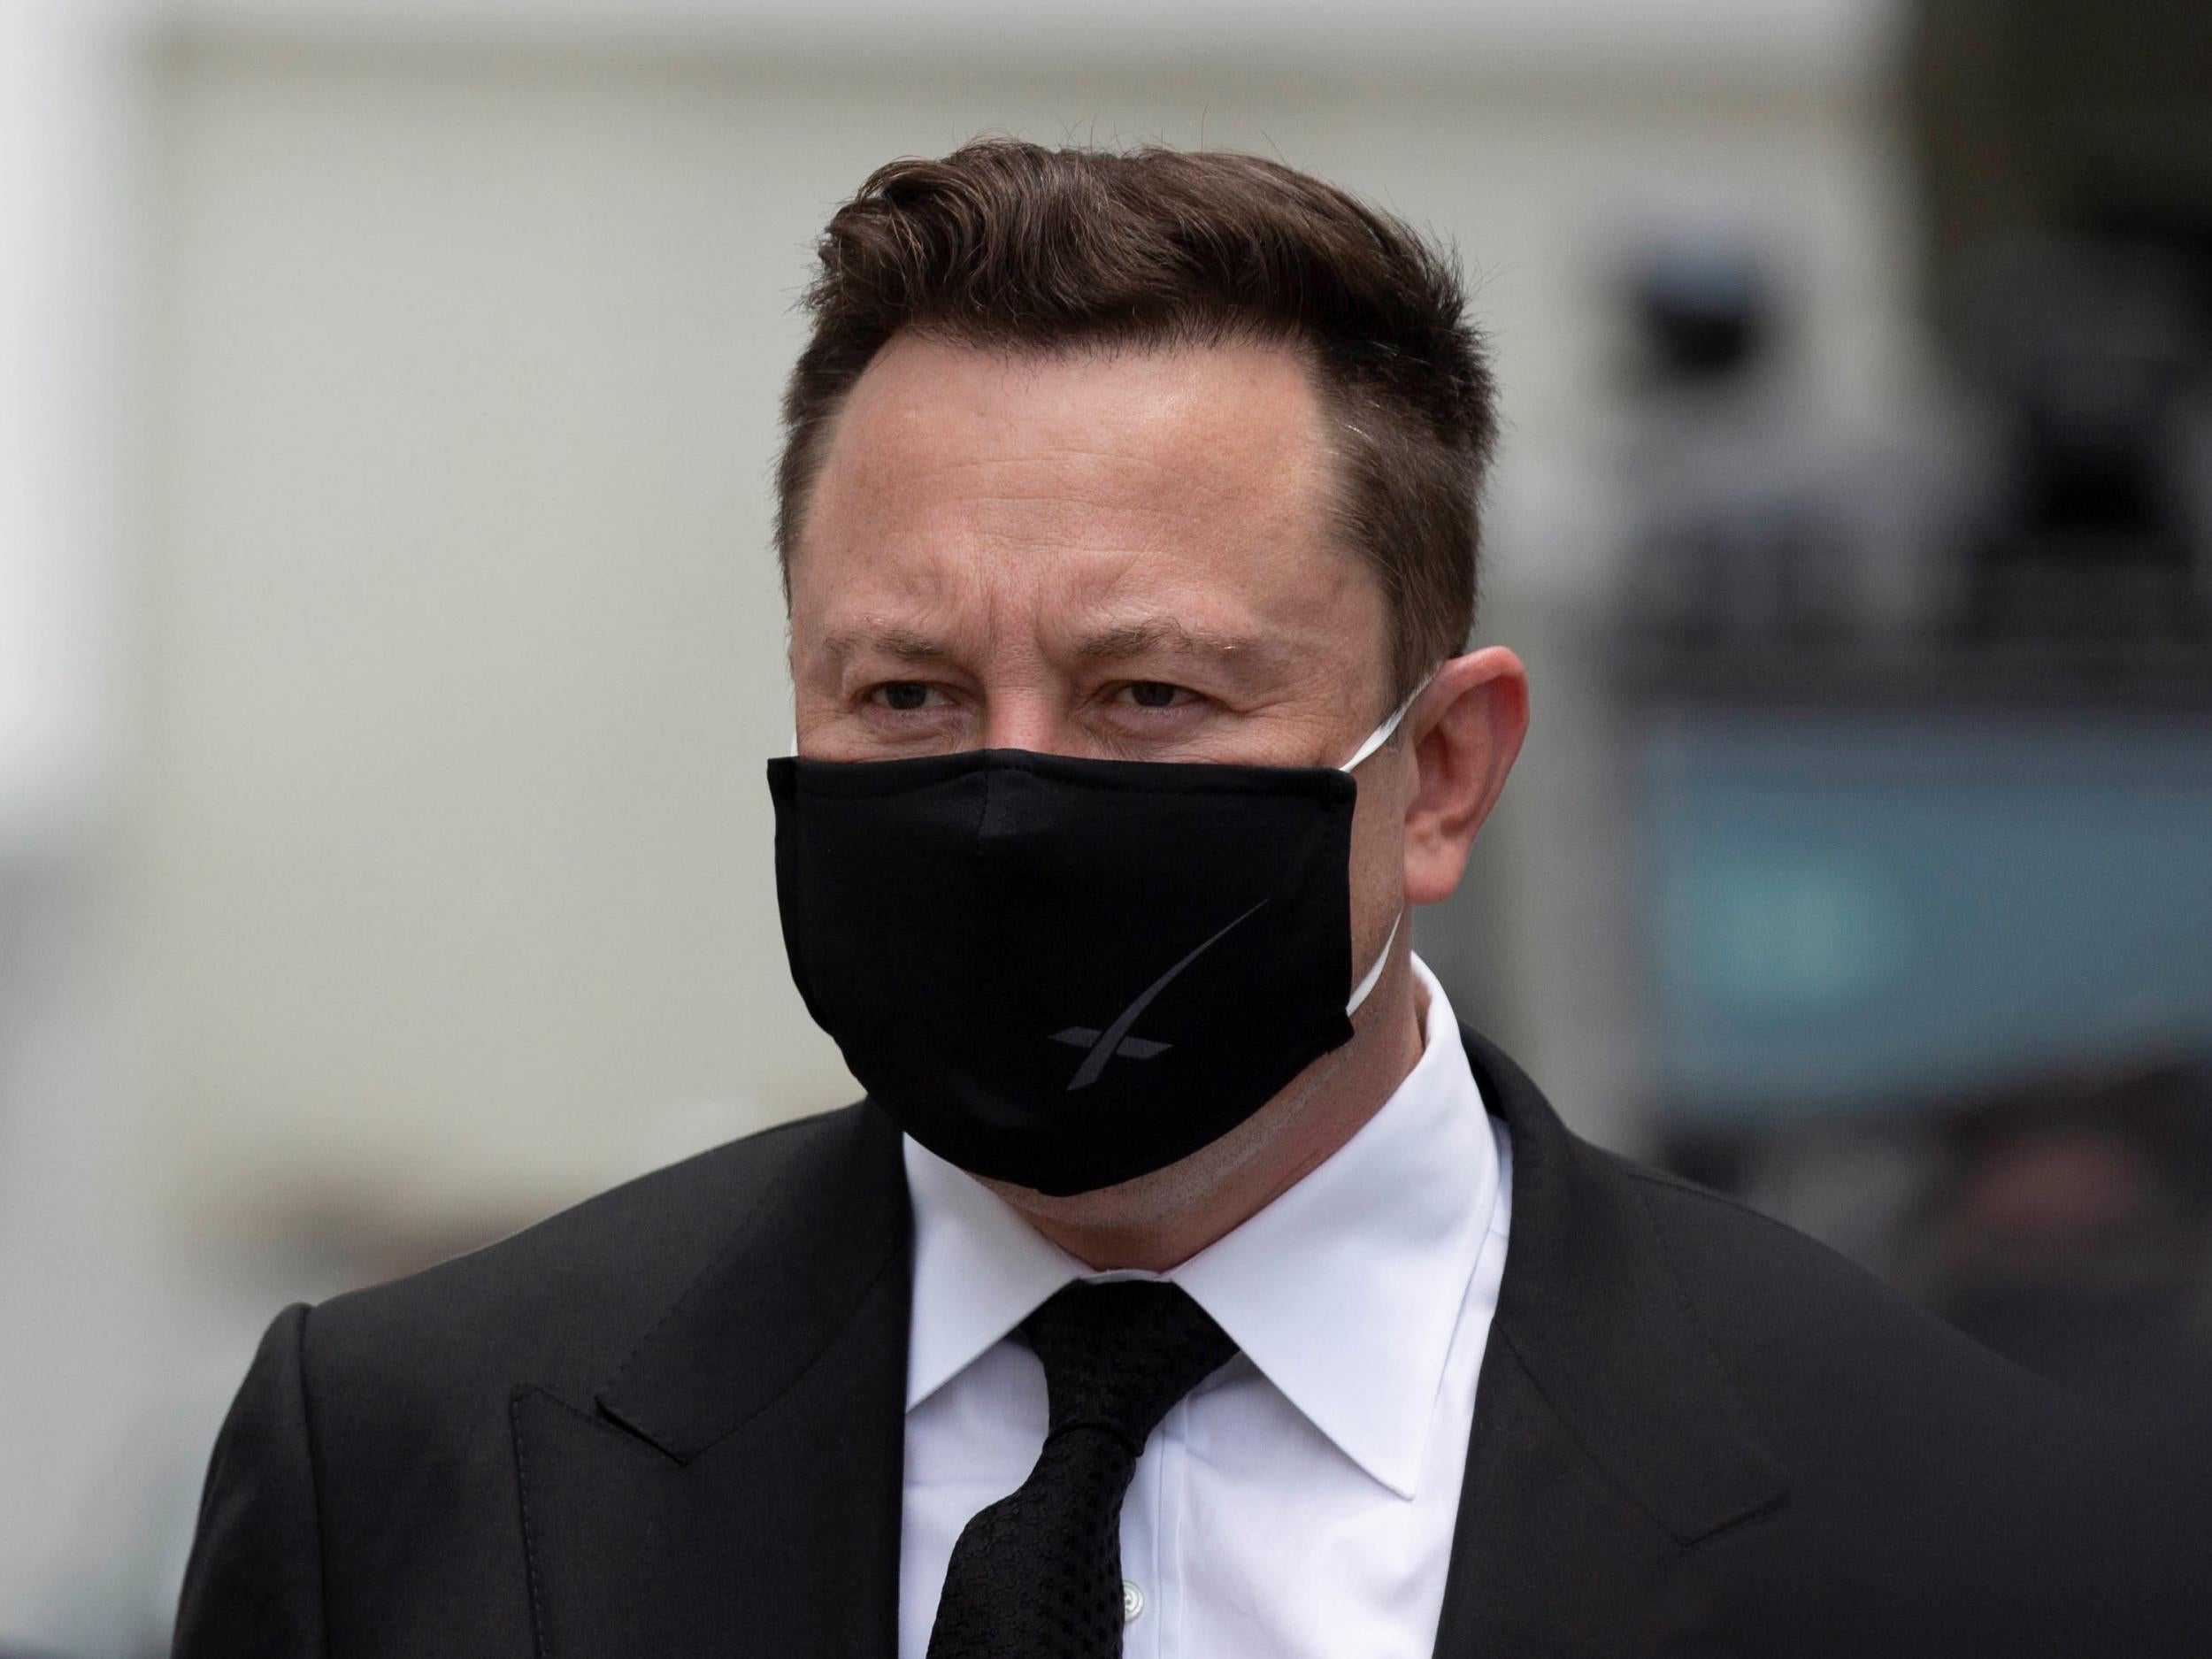 Elon Musk - latest news, breaking stories and comment - The ...